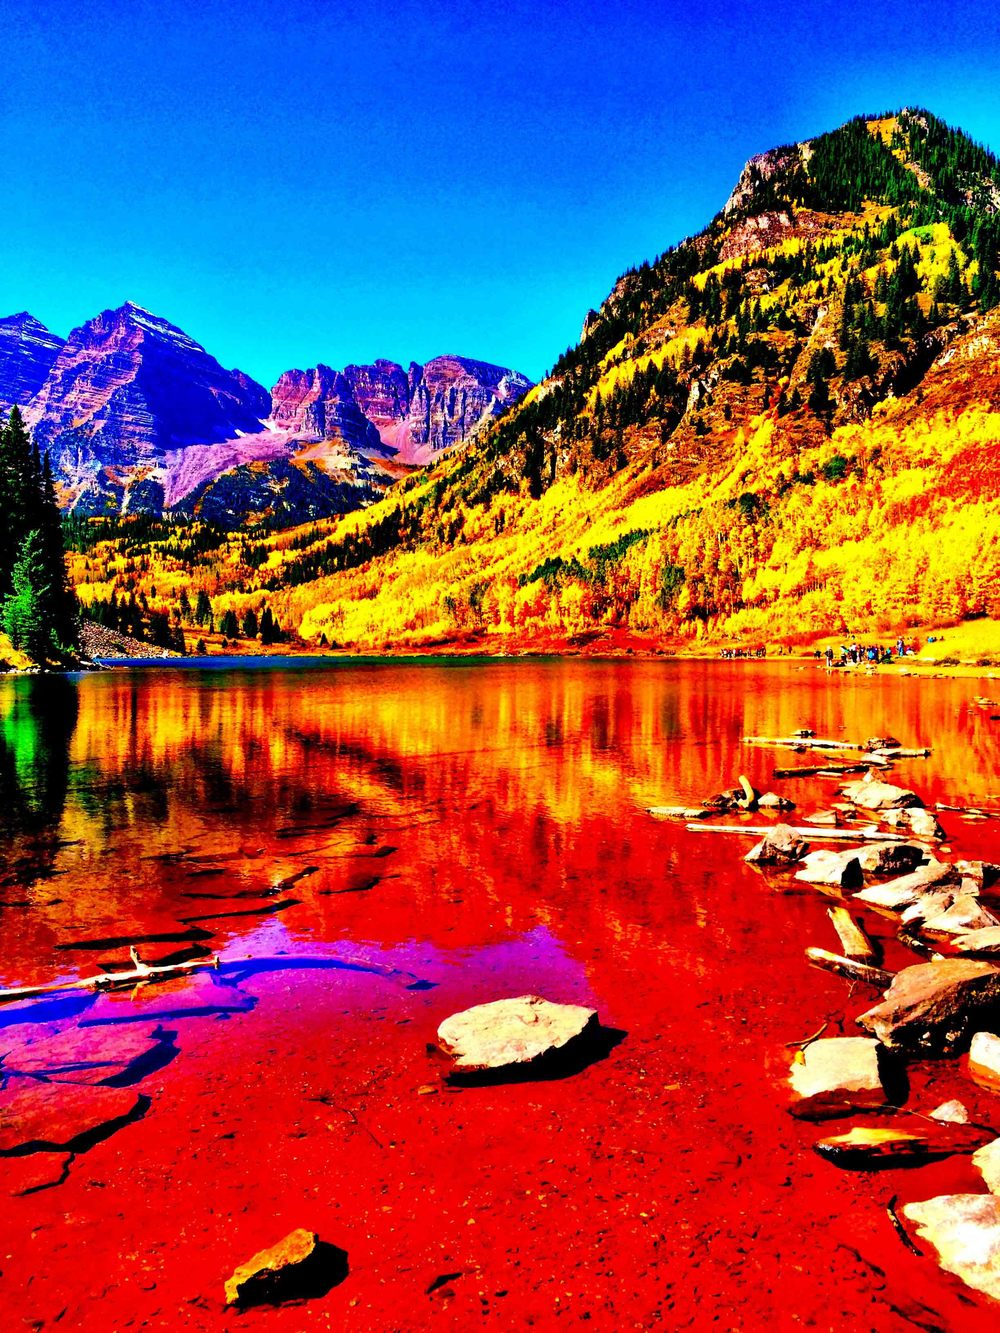 Maroon Bells, Colorado, September 2015